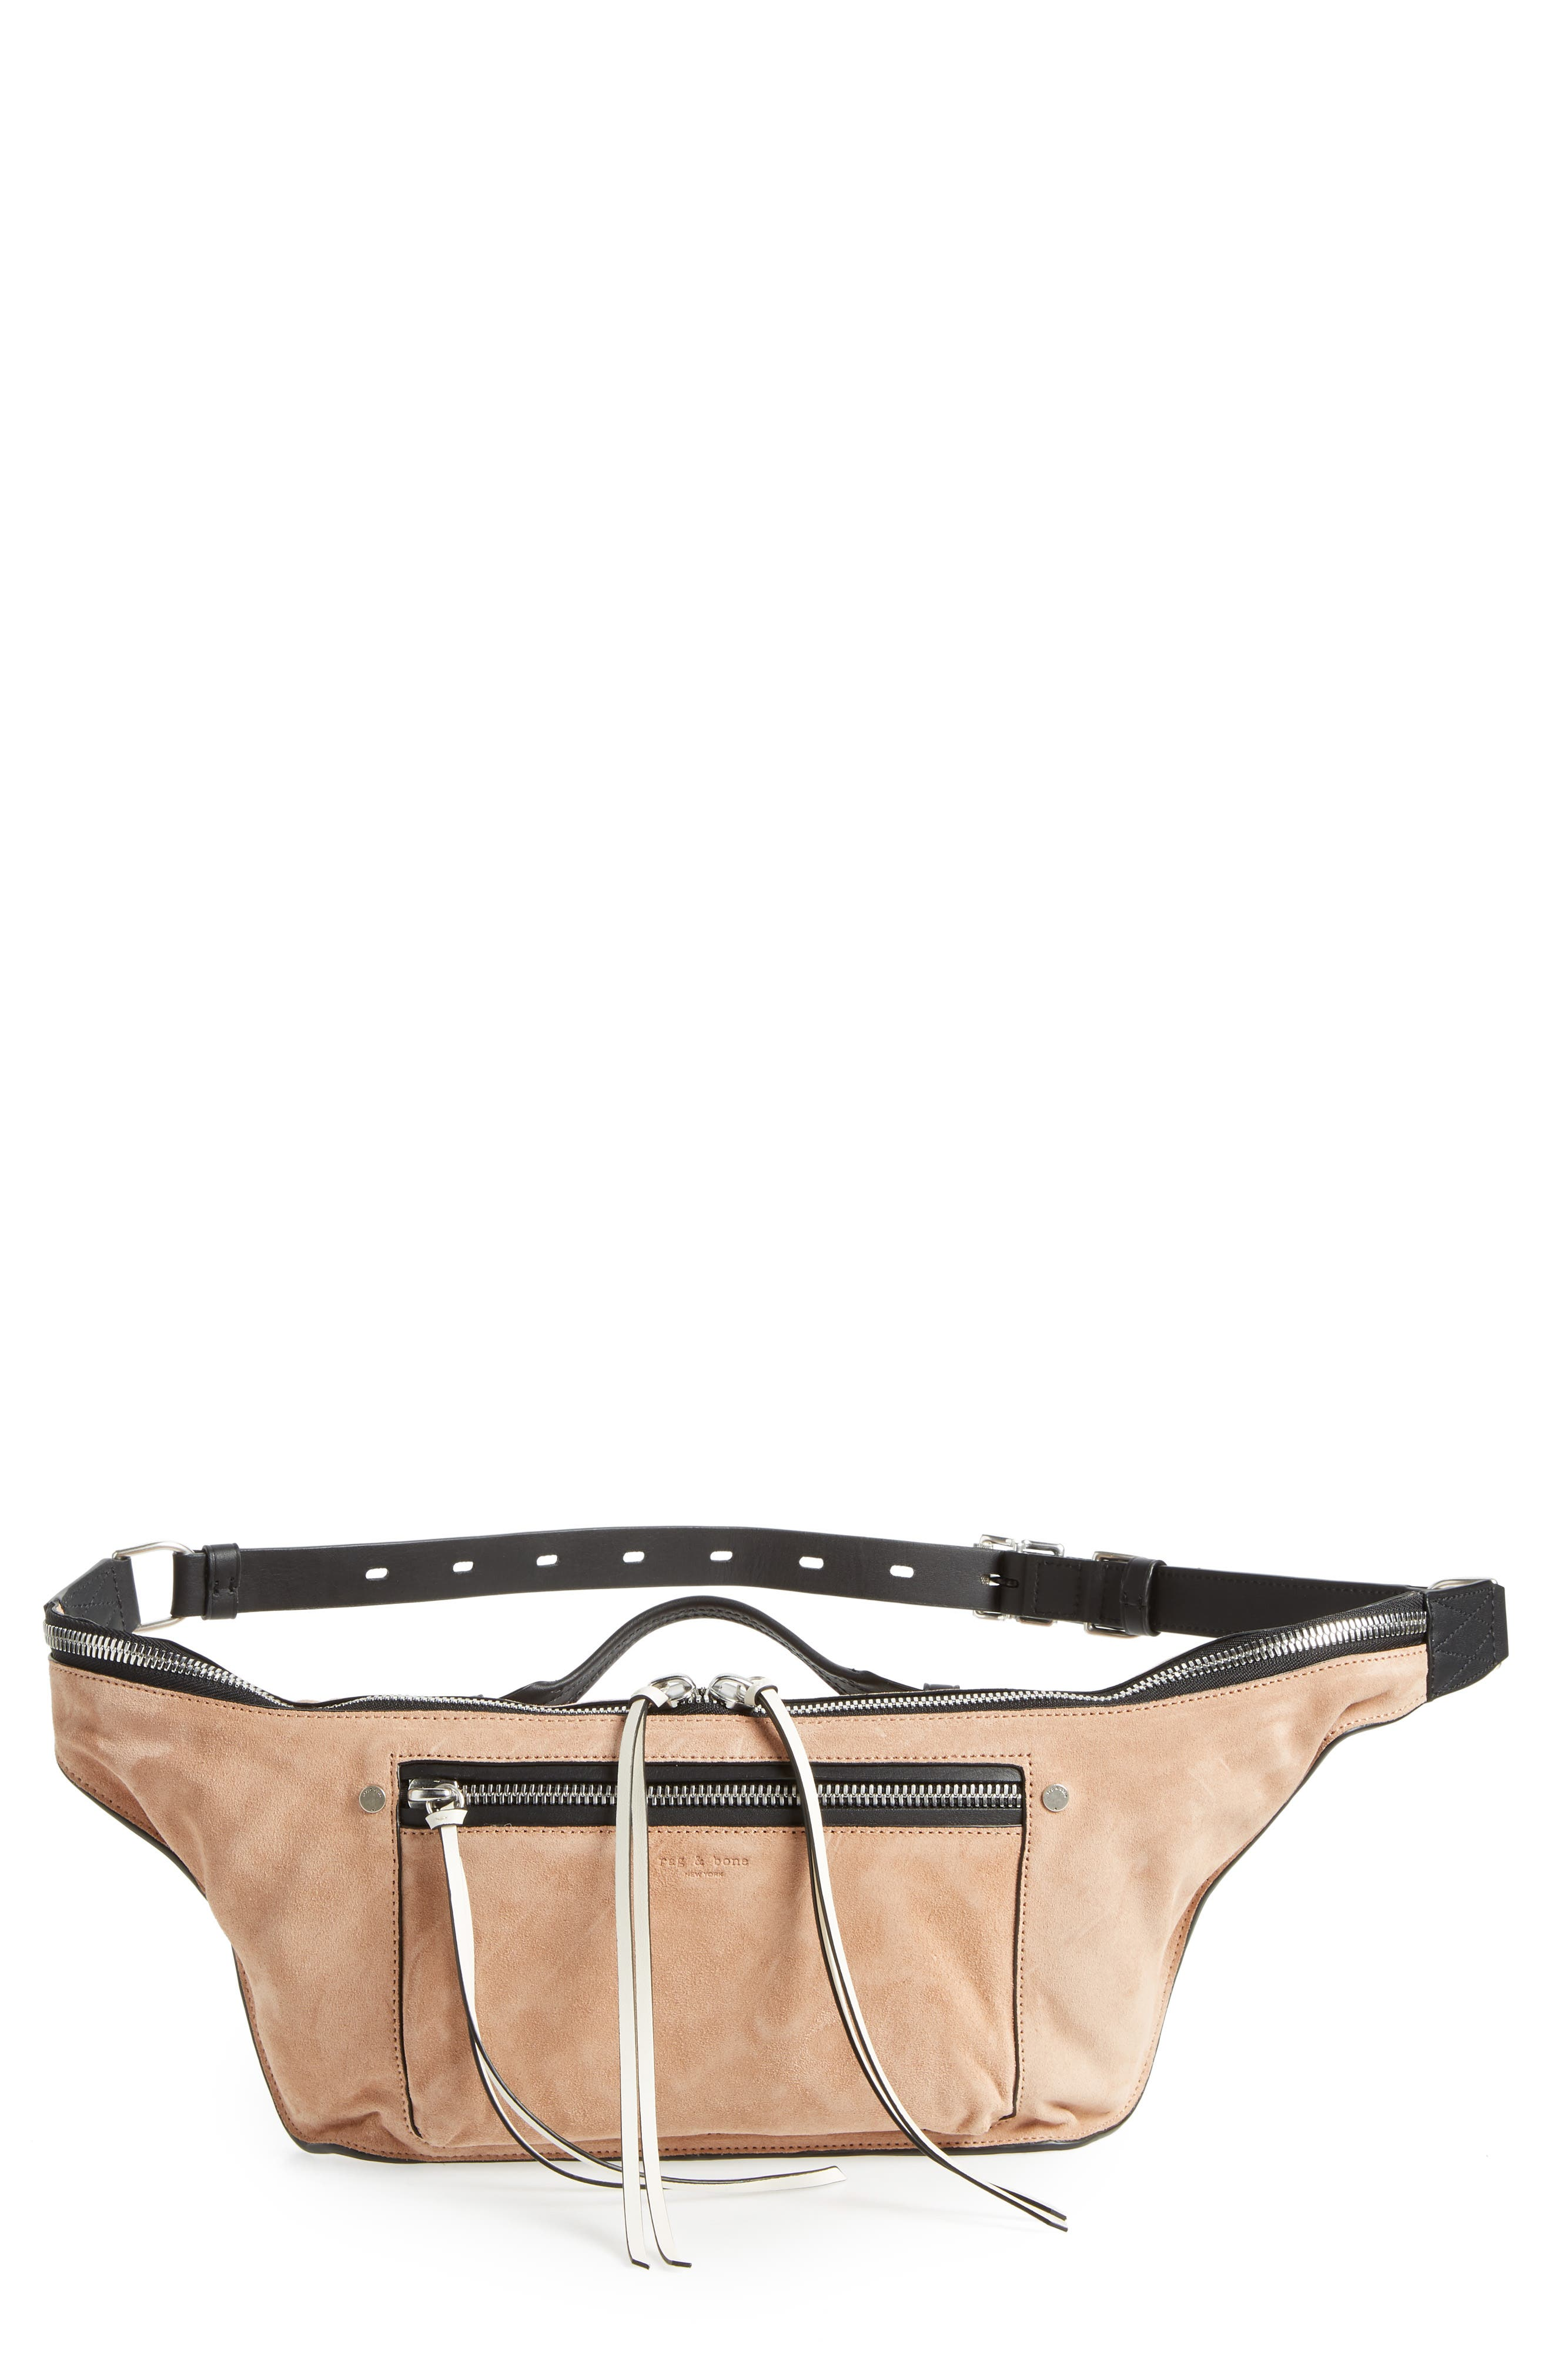 Elliot Leather Fanny Pack,                             Main thumbnail 1, color,                             NUDE SUEDE